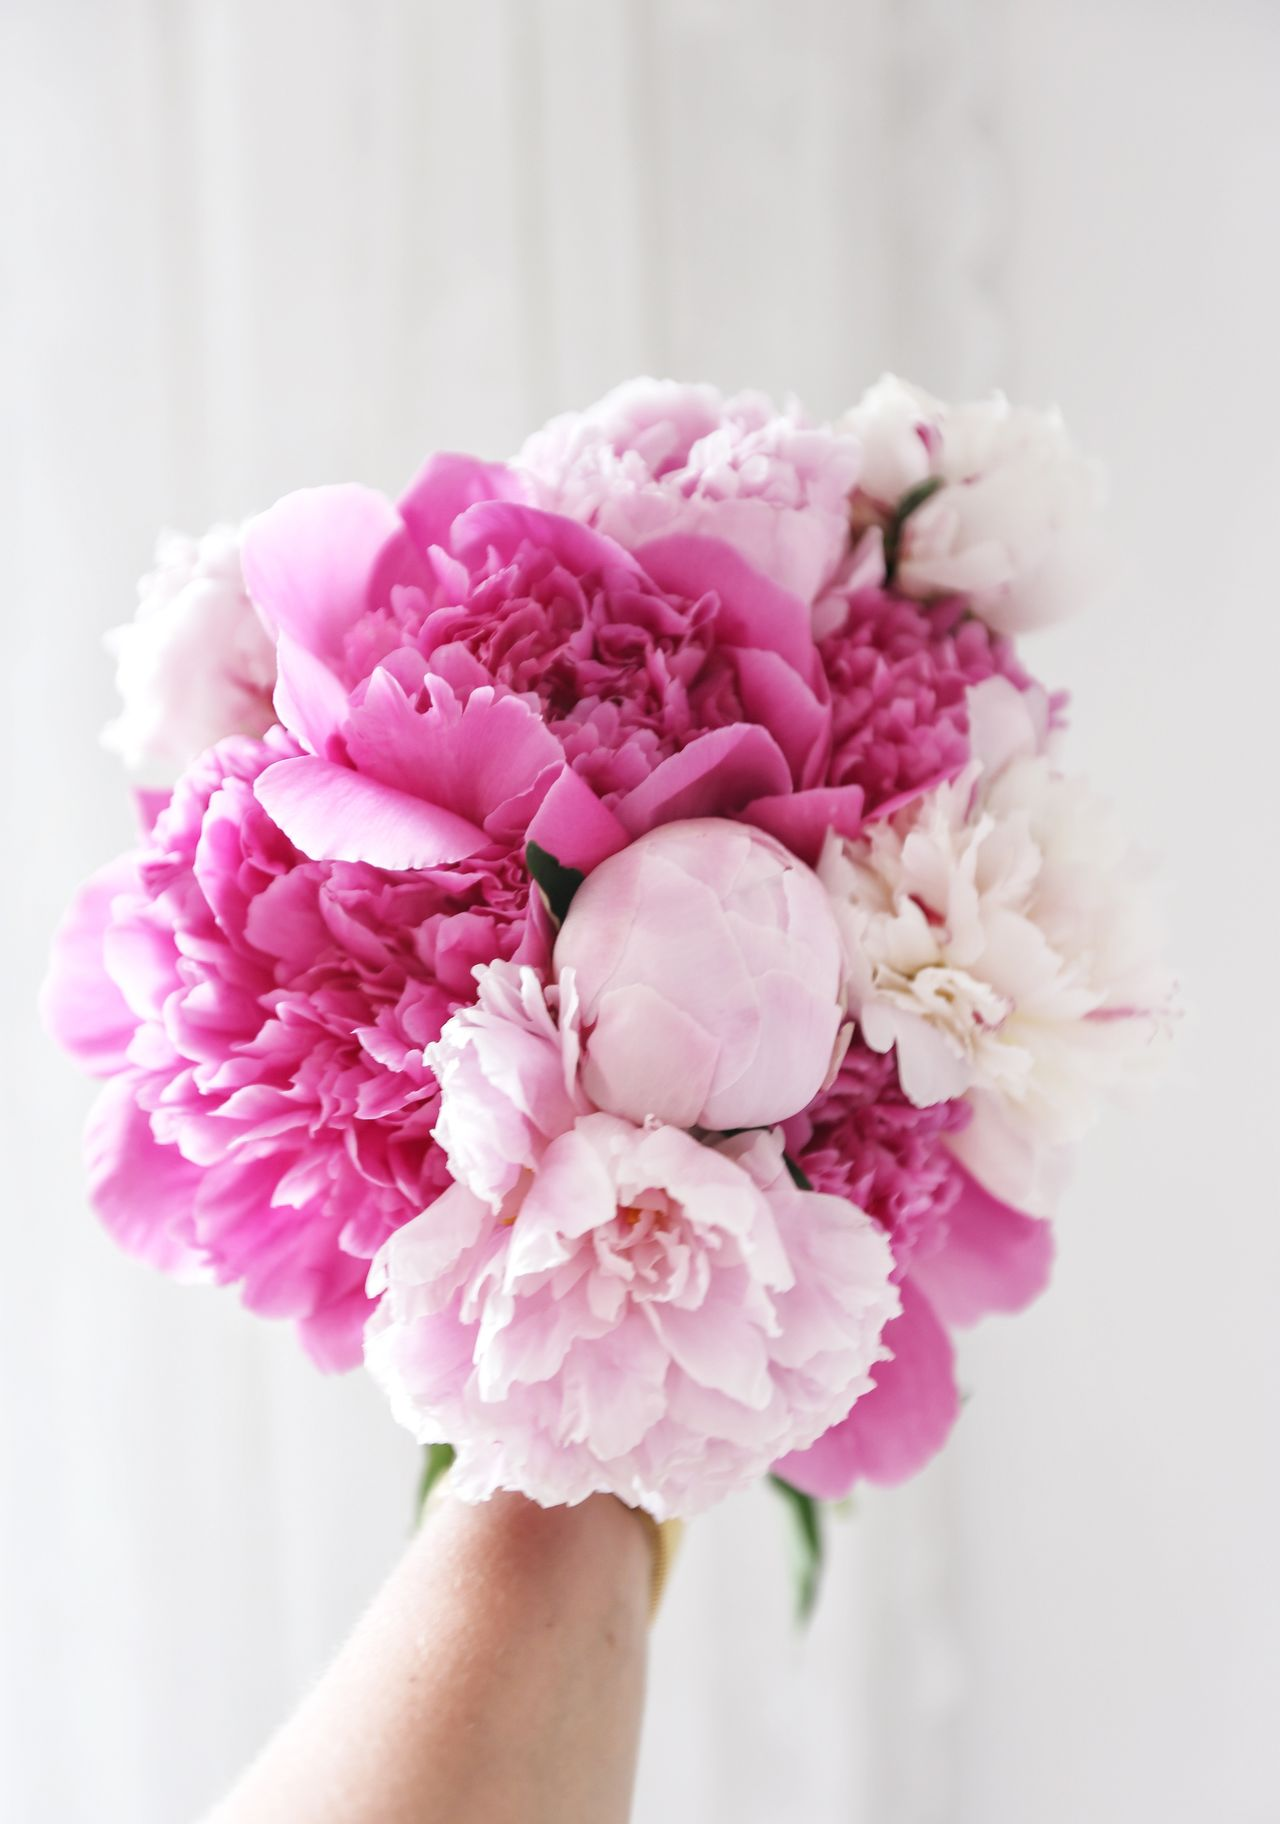 Flower Pink Color Human Hand Human Body Part Fragility Close-up Nature Peony  Holding One Person Bouquet Beauty In Nature People Adult Flower Head Indoors  Day White Background Freshness Adults Only Eye4photography